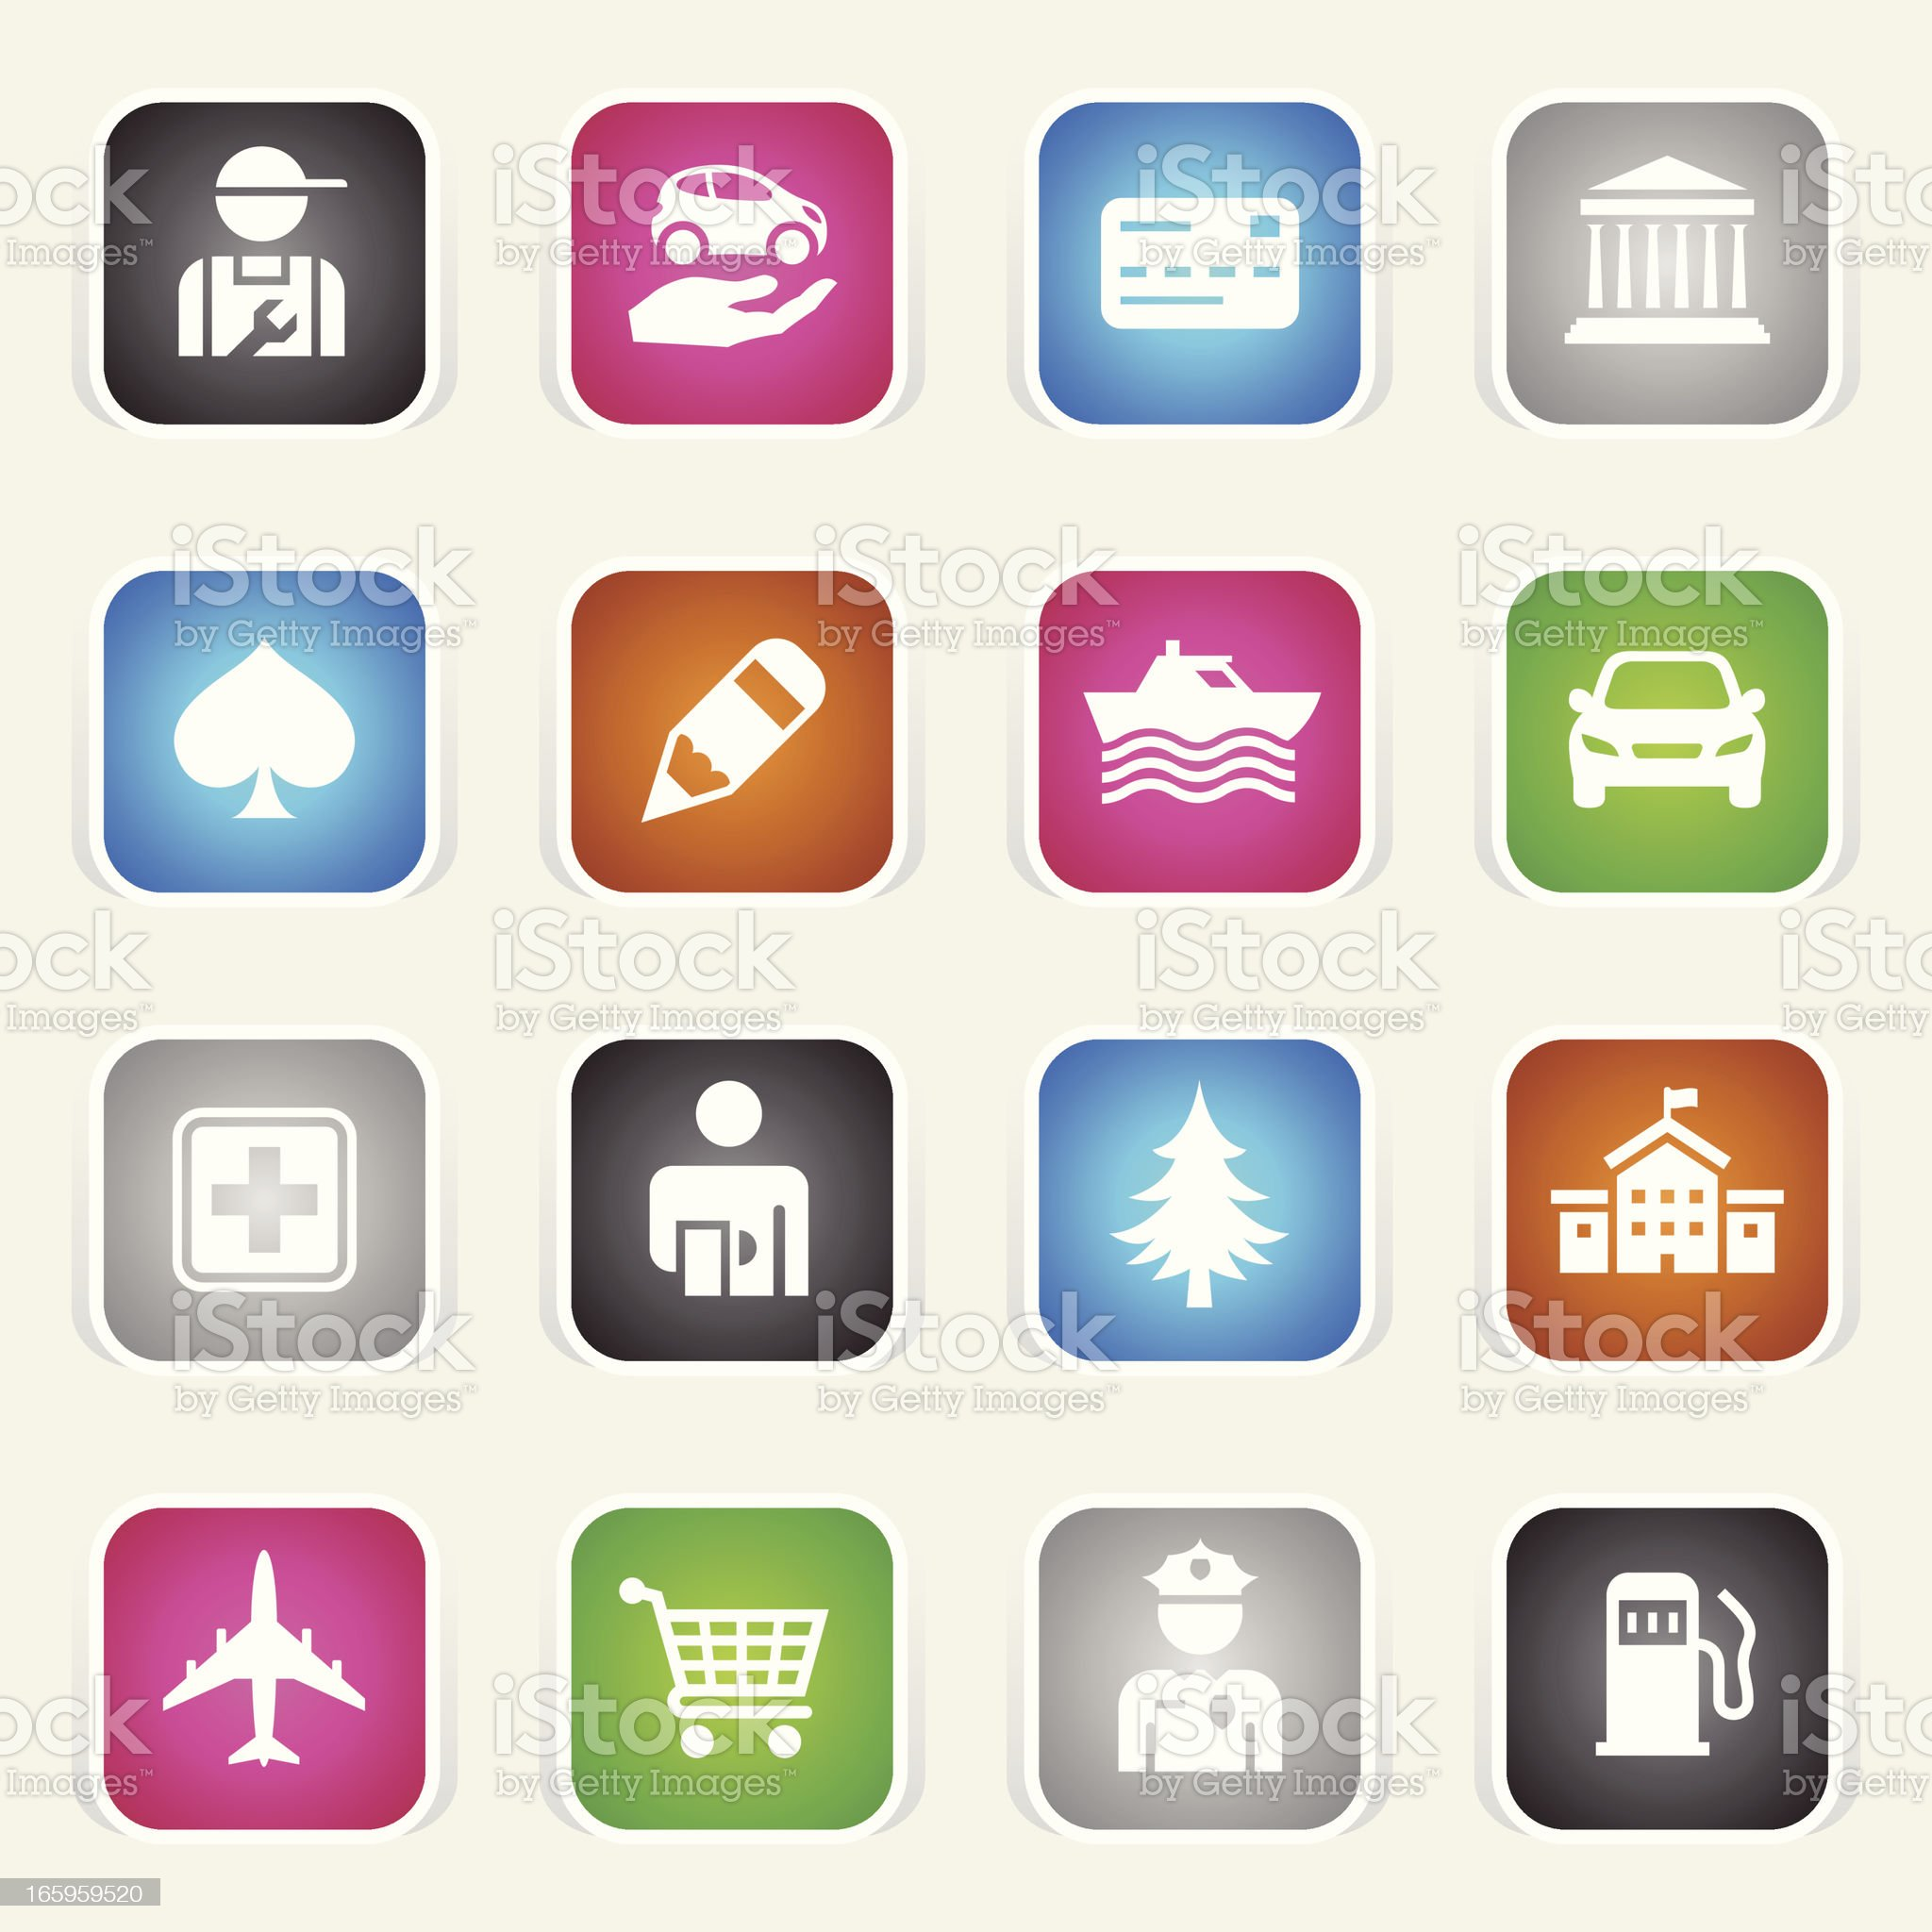 Multicolor Icons - GPS Points of Interest royalty-free stock vector art